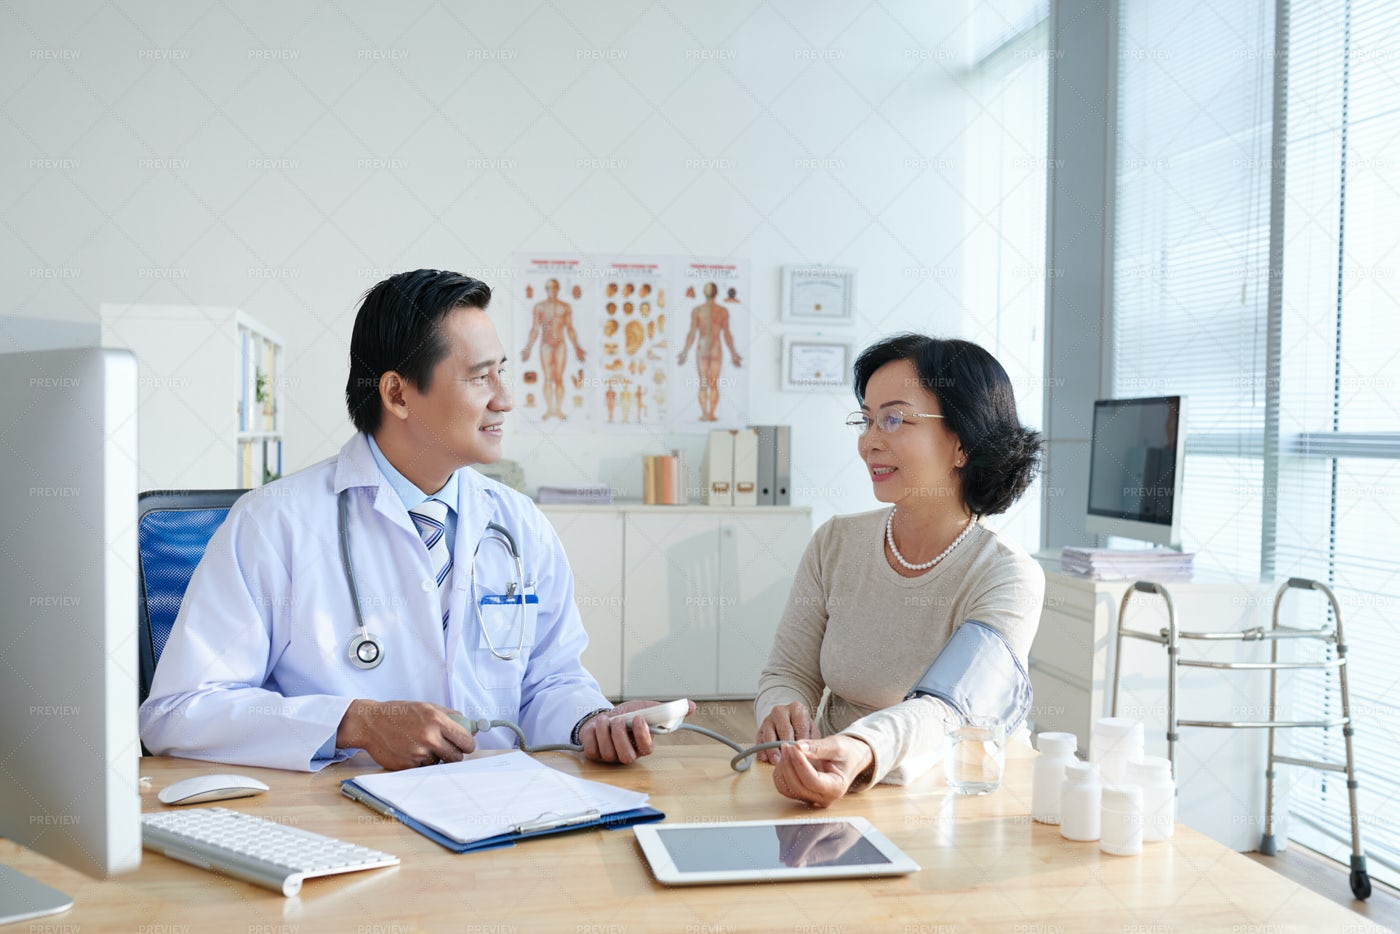 Measuring Blood Pressure Of Patient: Stock Photos